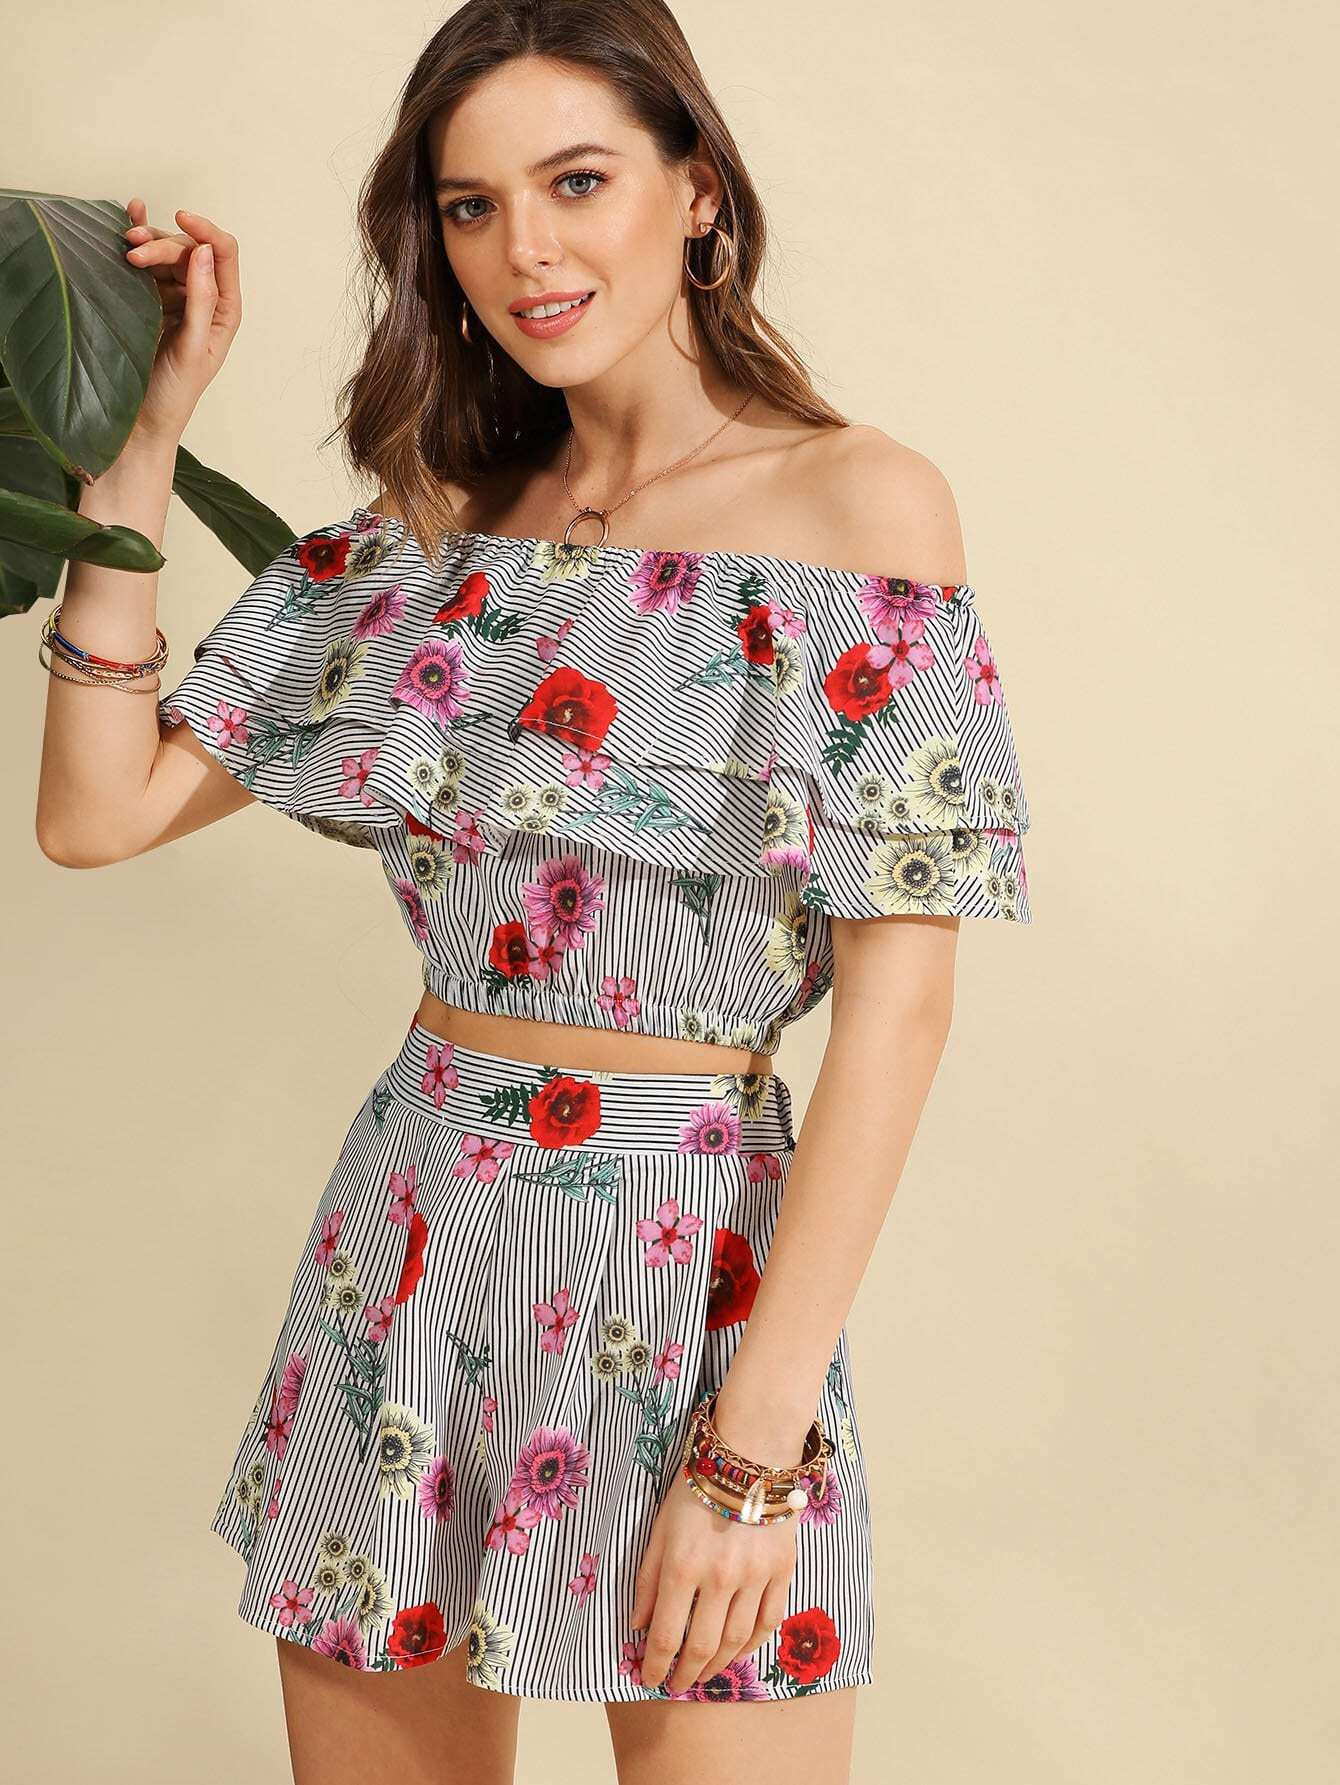 Flounce Layered Florals Top With Shorts allover florals bow tie detail frill top with shorts